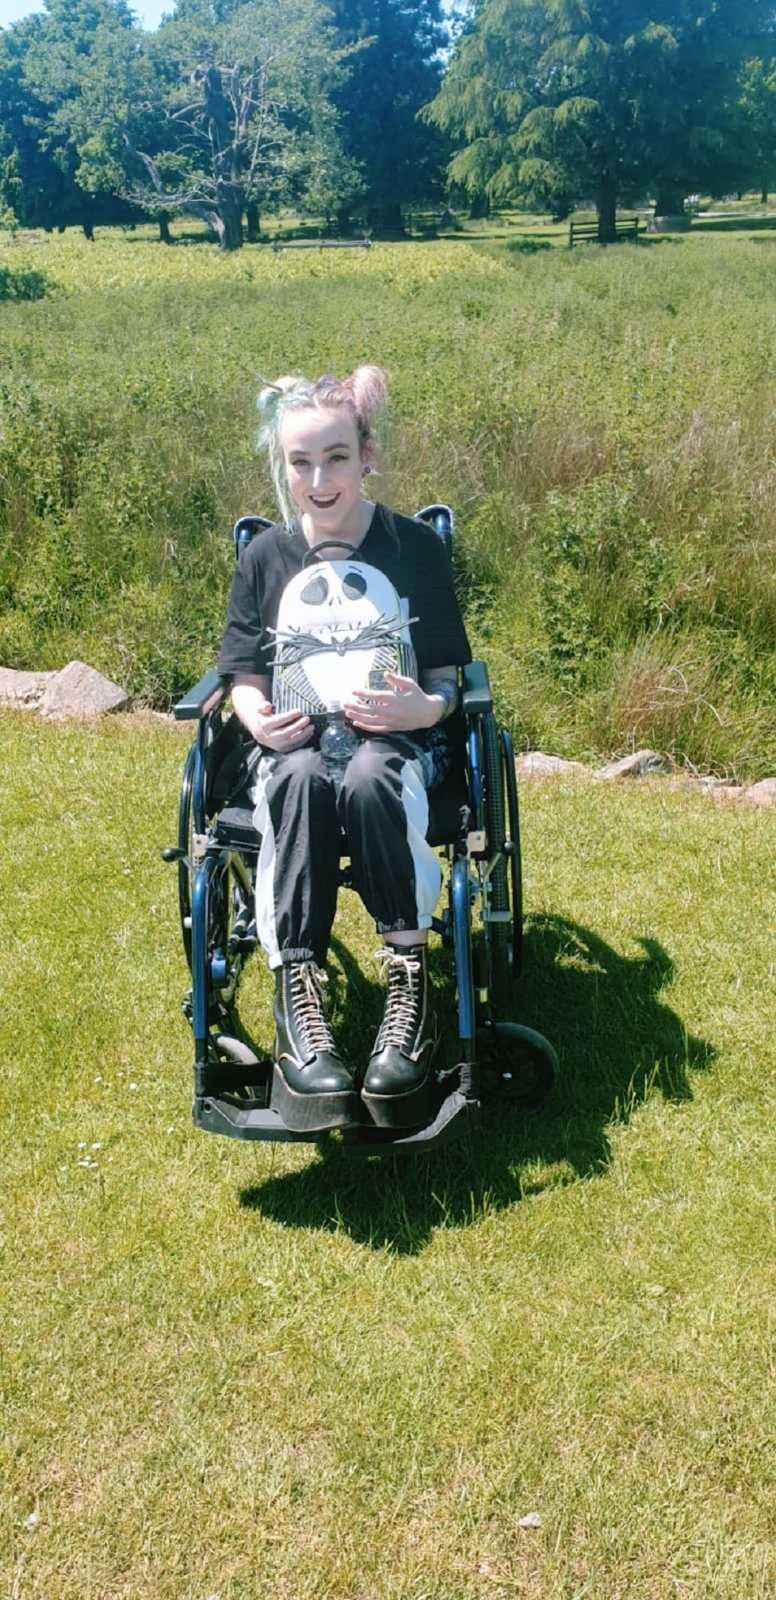 A woman in a wheelchair sits in a field holding a backpack